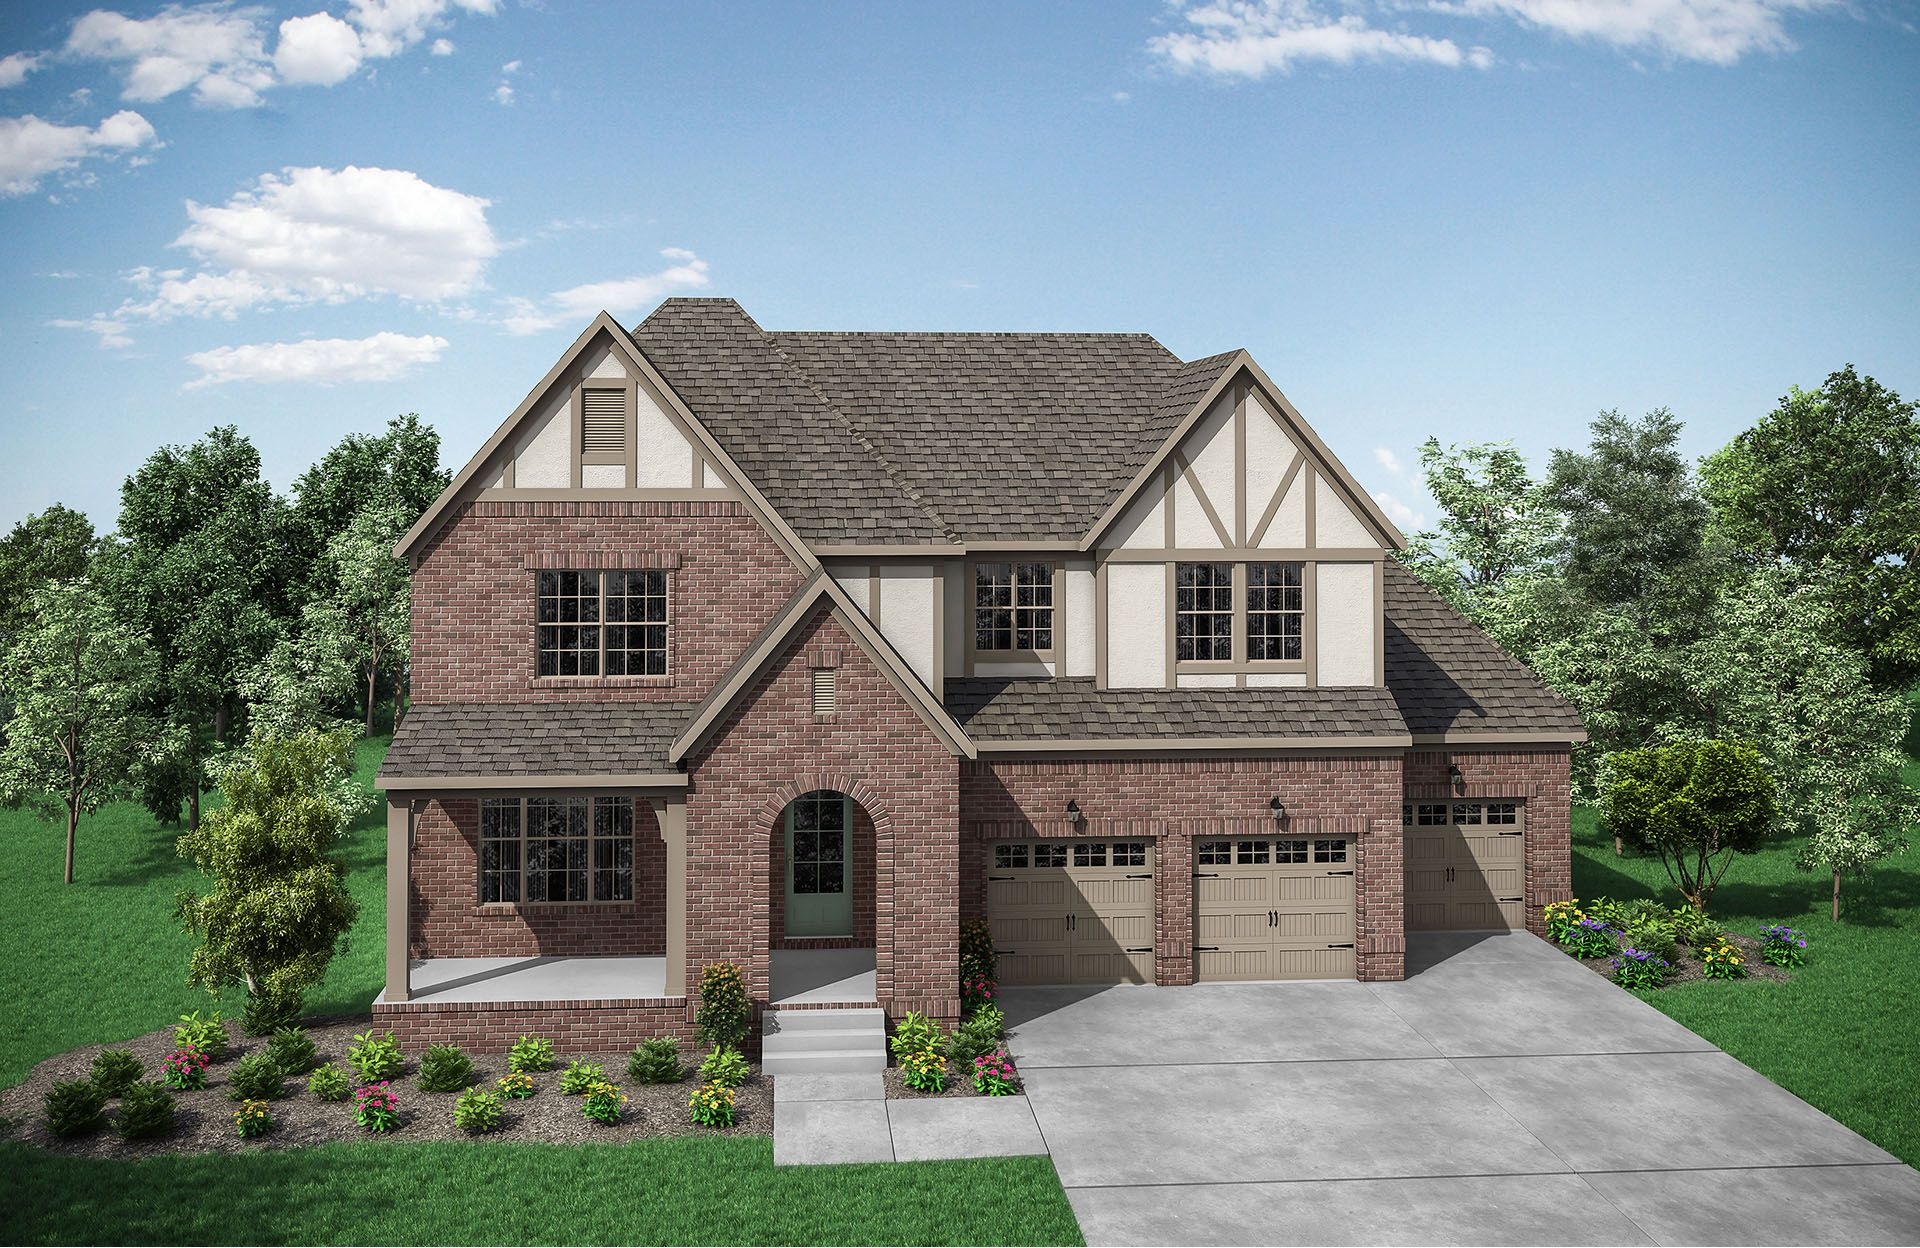 Single Family for Active at Matthews 152 Ashington Circle Hendersonville, Tennessee 37075 United States